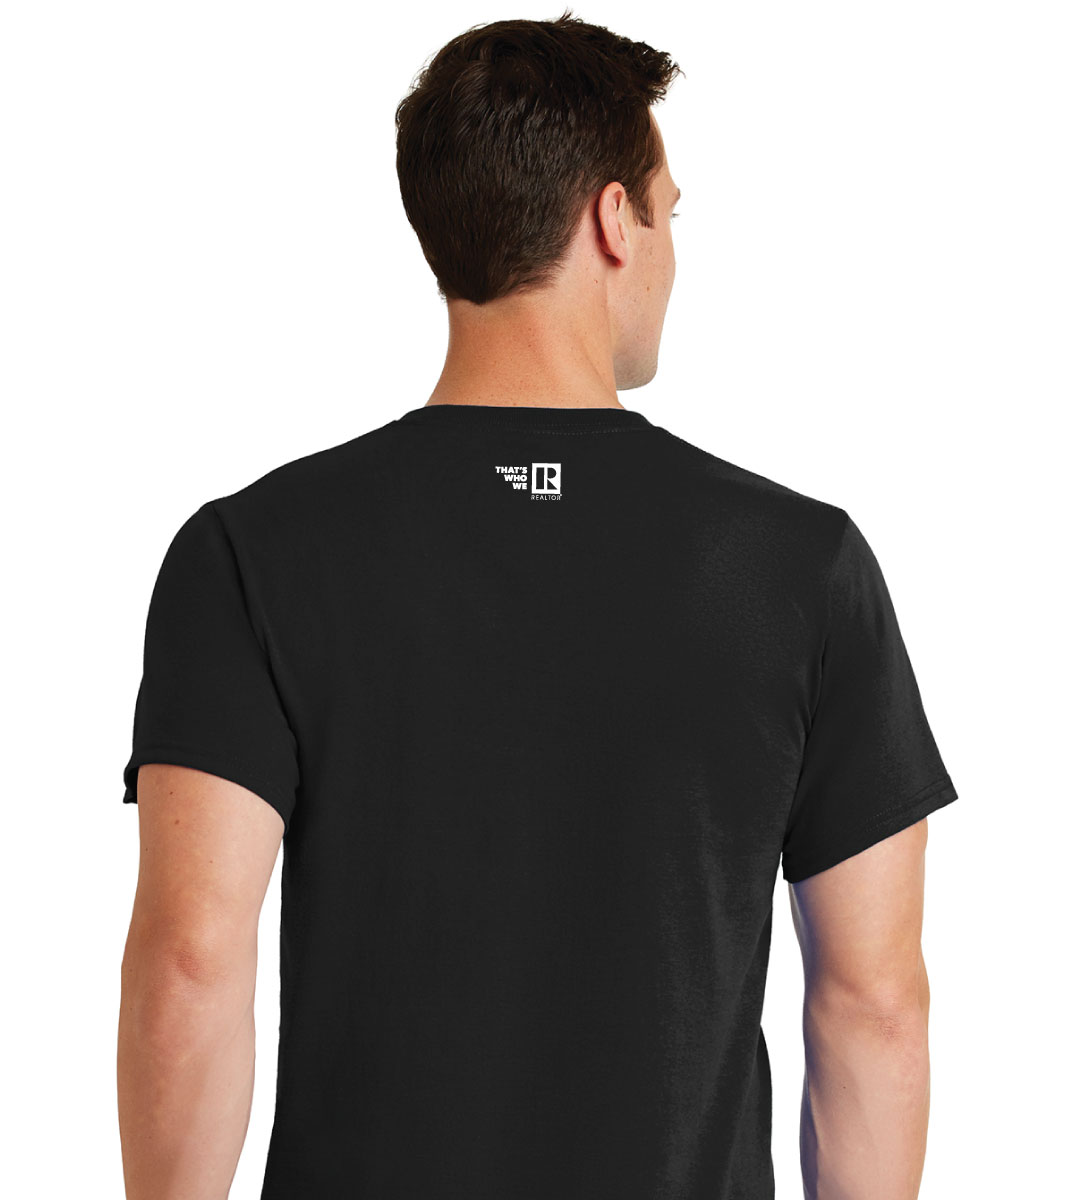 """That R Stands for REALTOR®"" Value Tee Shirt - RCG1139"